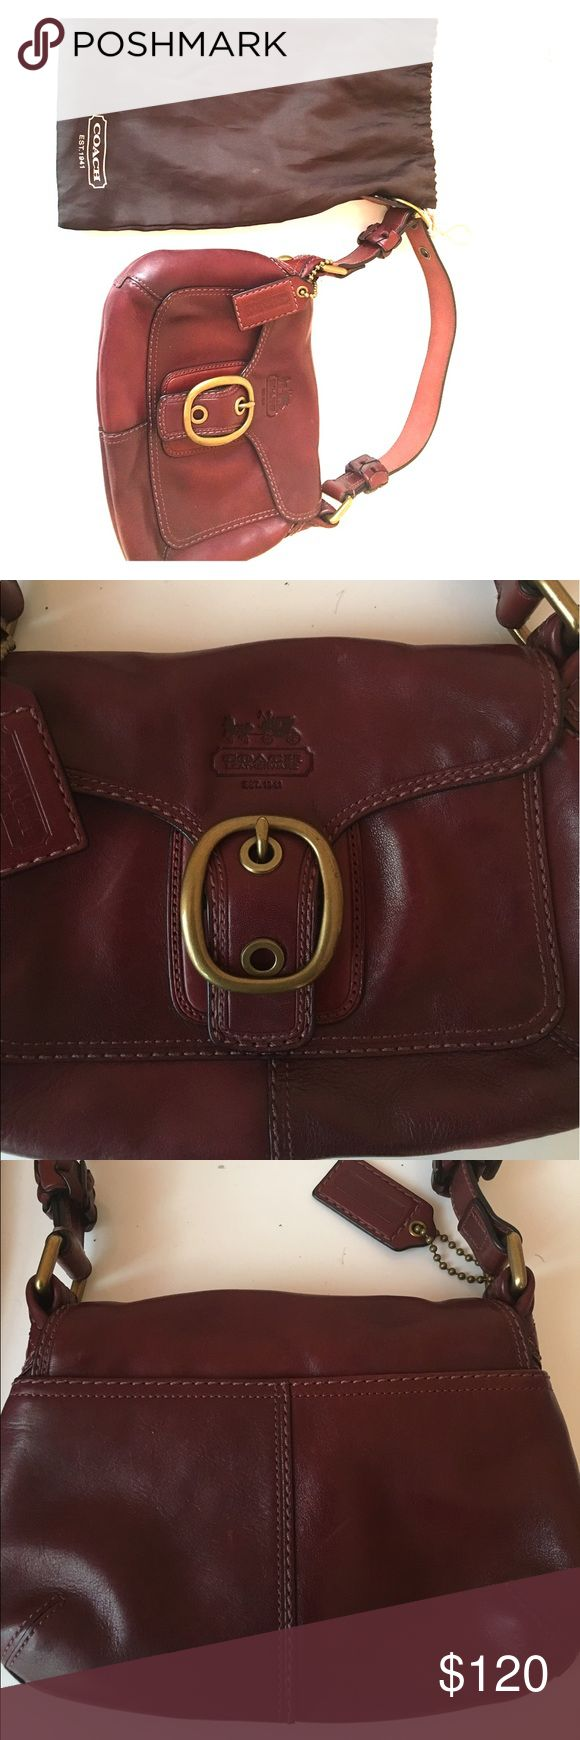 Coach leather mini shoulder bag Authentic, Color is wineberry, many compartments, snap closure, leather is great condition, comes with original dustbag, perfect for Fall ladies! Coach Bags Mini Bags